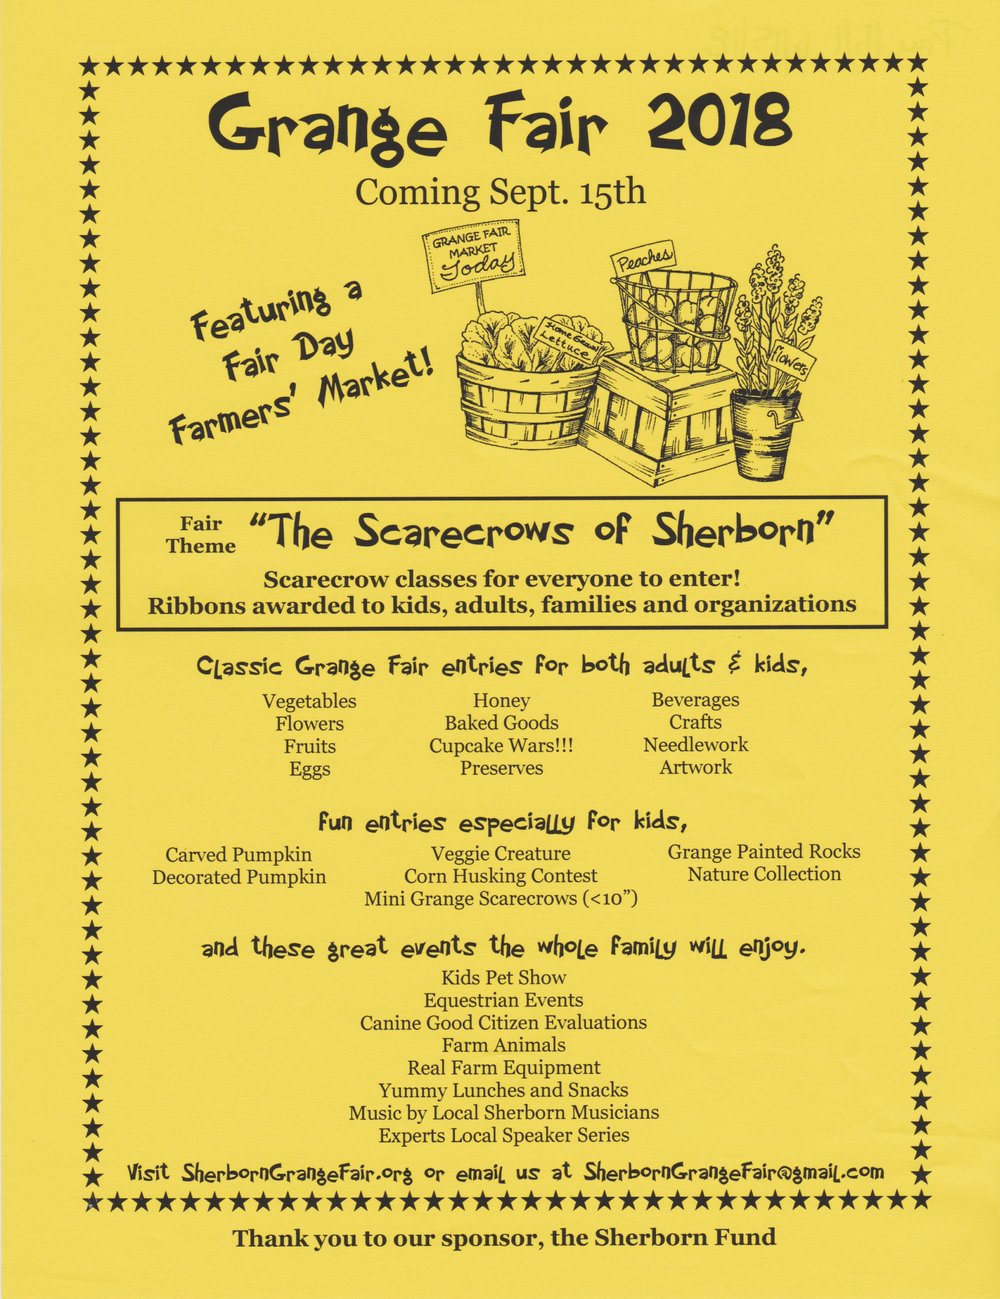 So many fun entry categories! - Looking forward to a great Fair Day with classed entries to view, local musicians, an all-day speaker line up, hayrides, demonstrations, farm animals, displays by local farmers, a farmer's market - and more!!